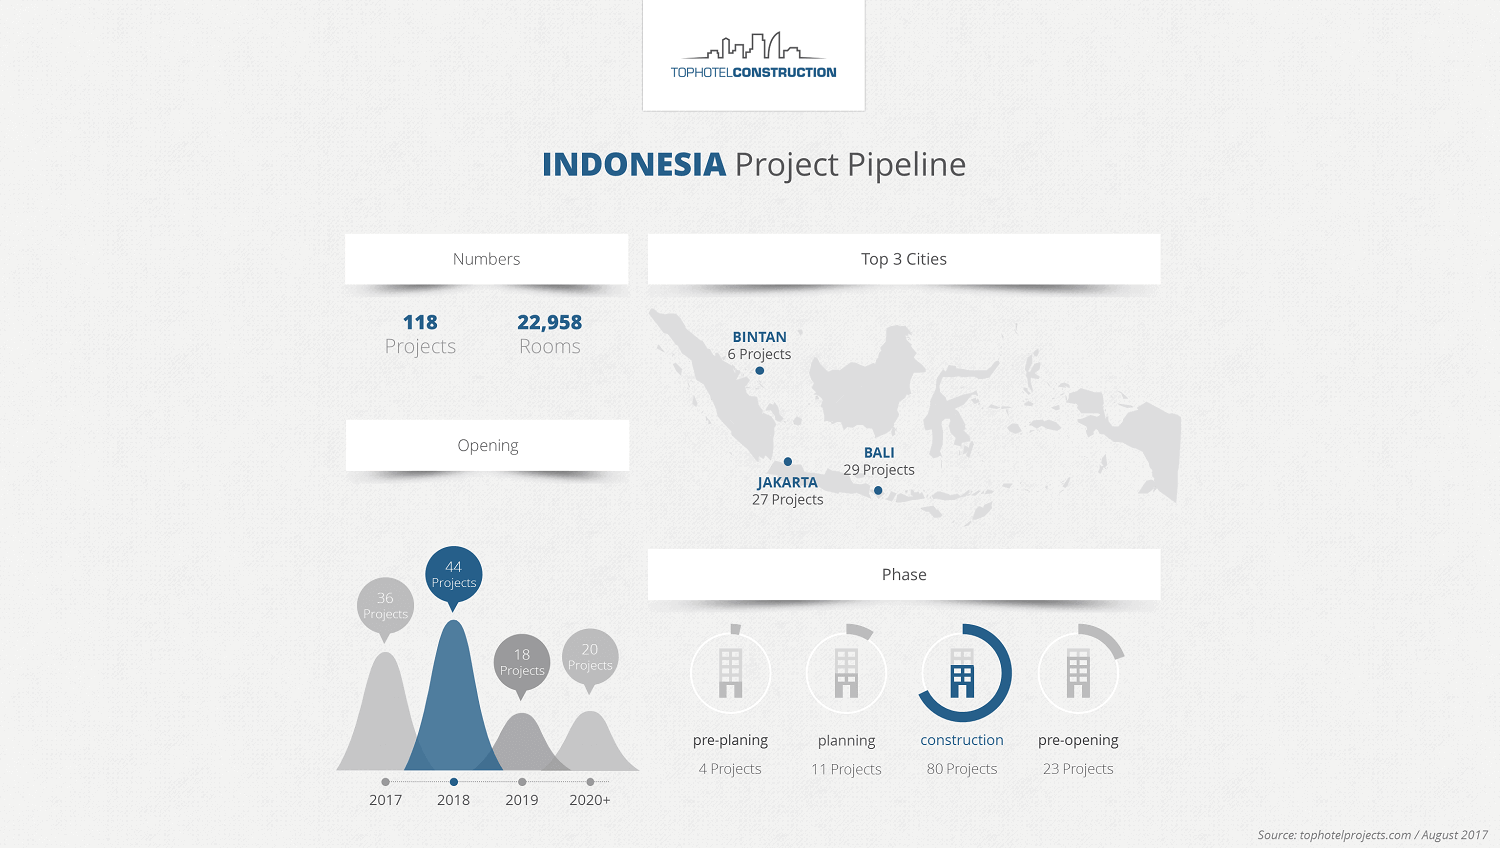 Indonesia Pipeline